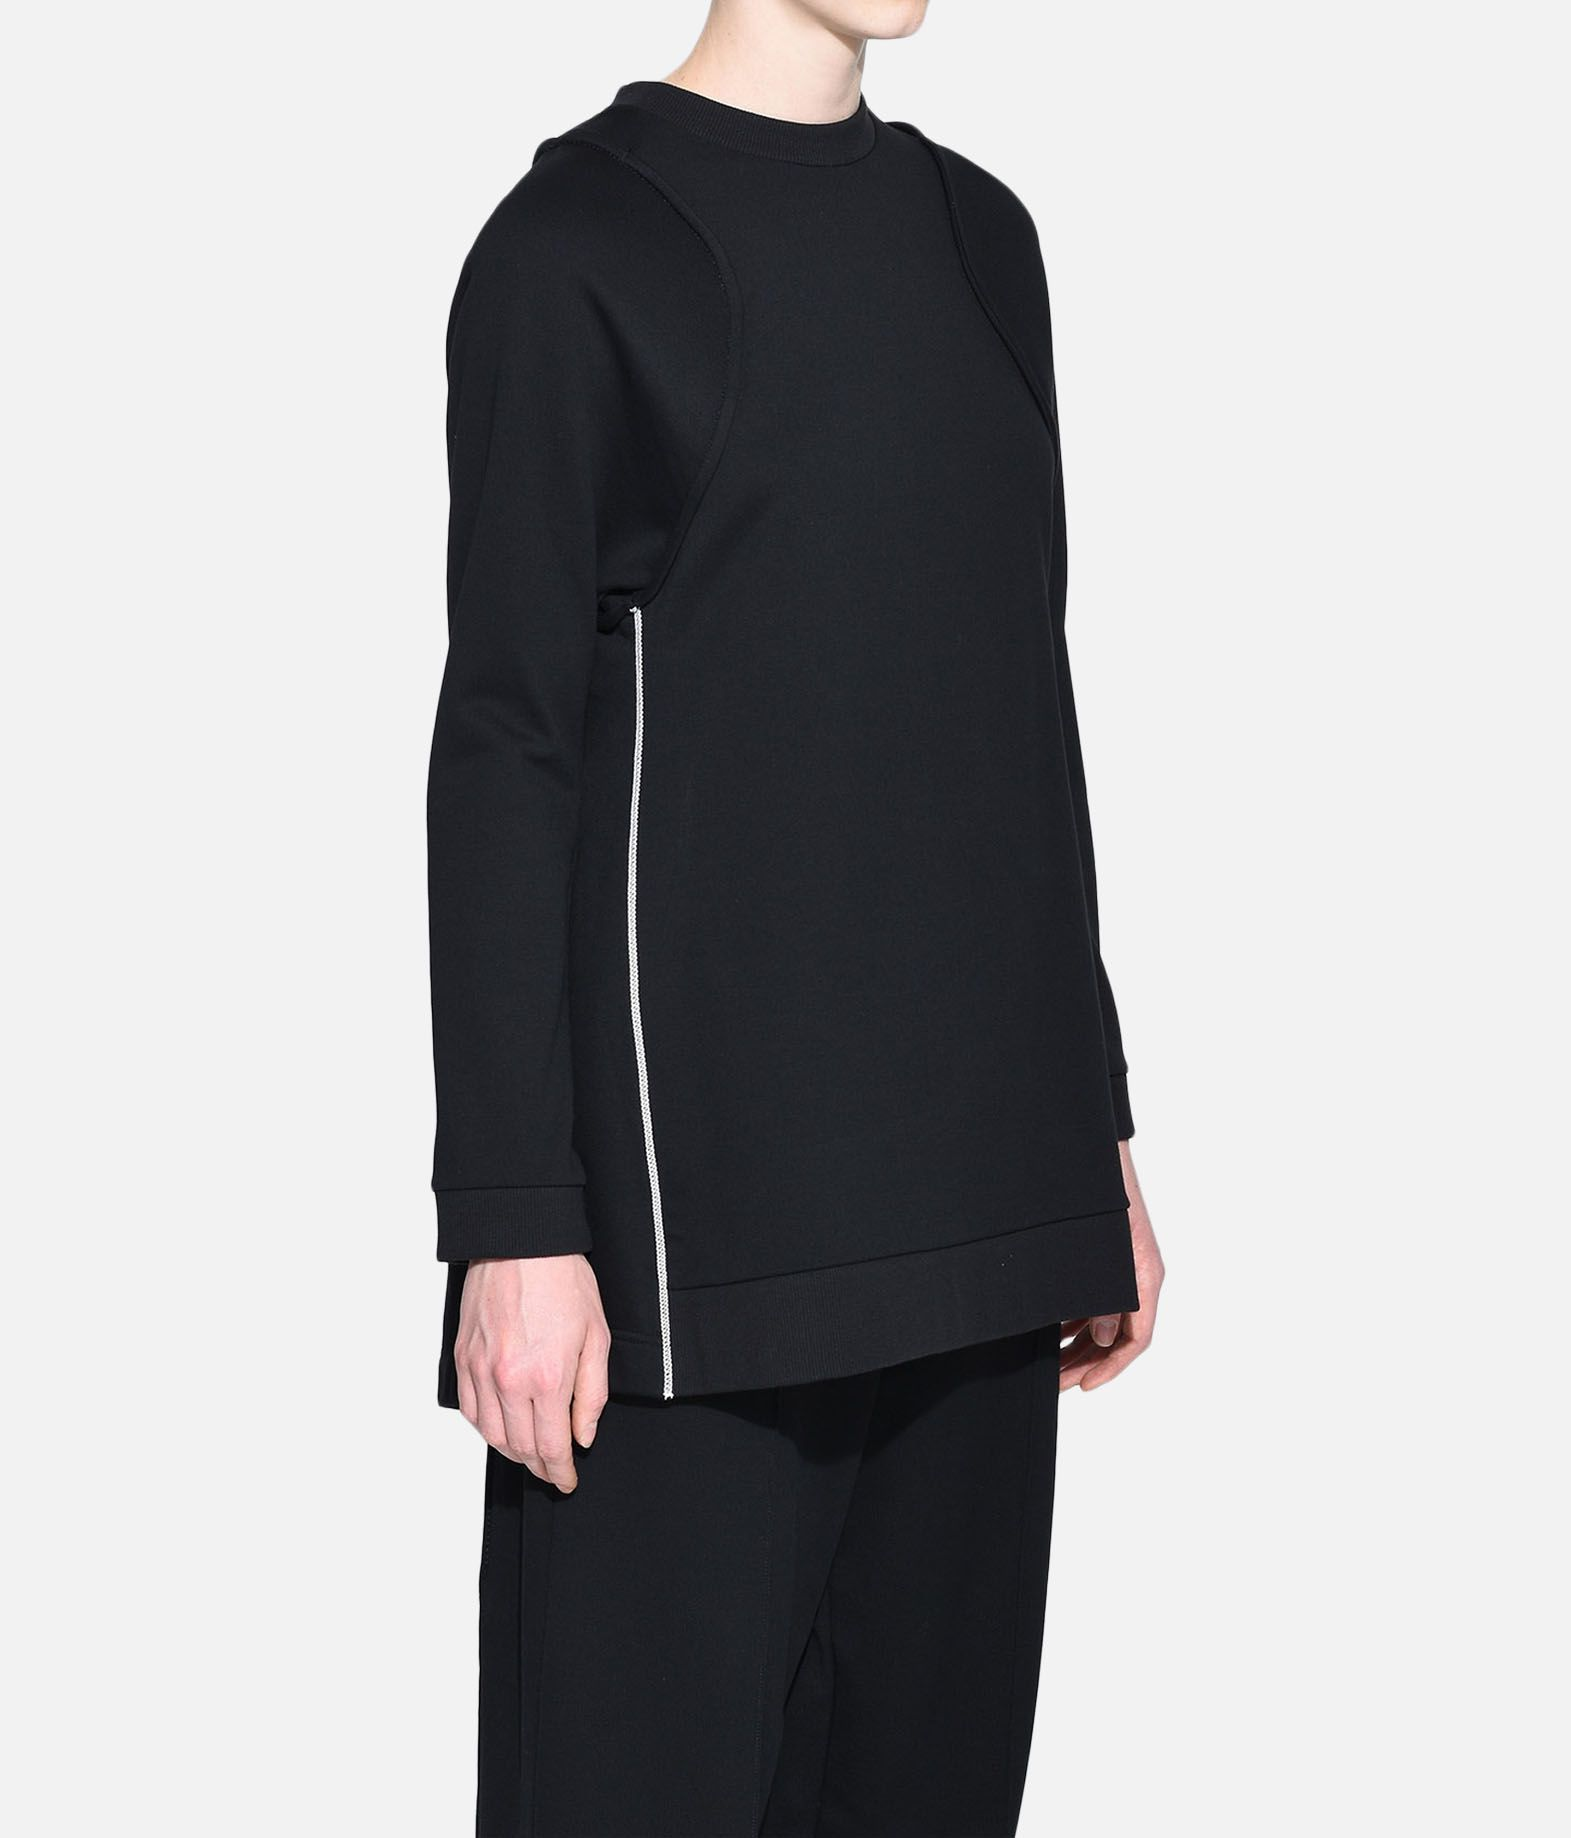 Y-3 Y-3 Sashiko Sweater Sweatshirt Woman e